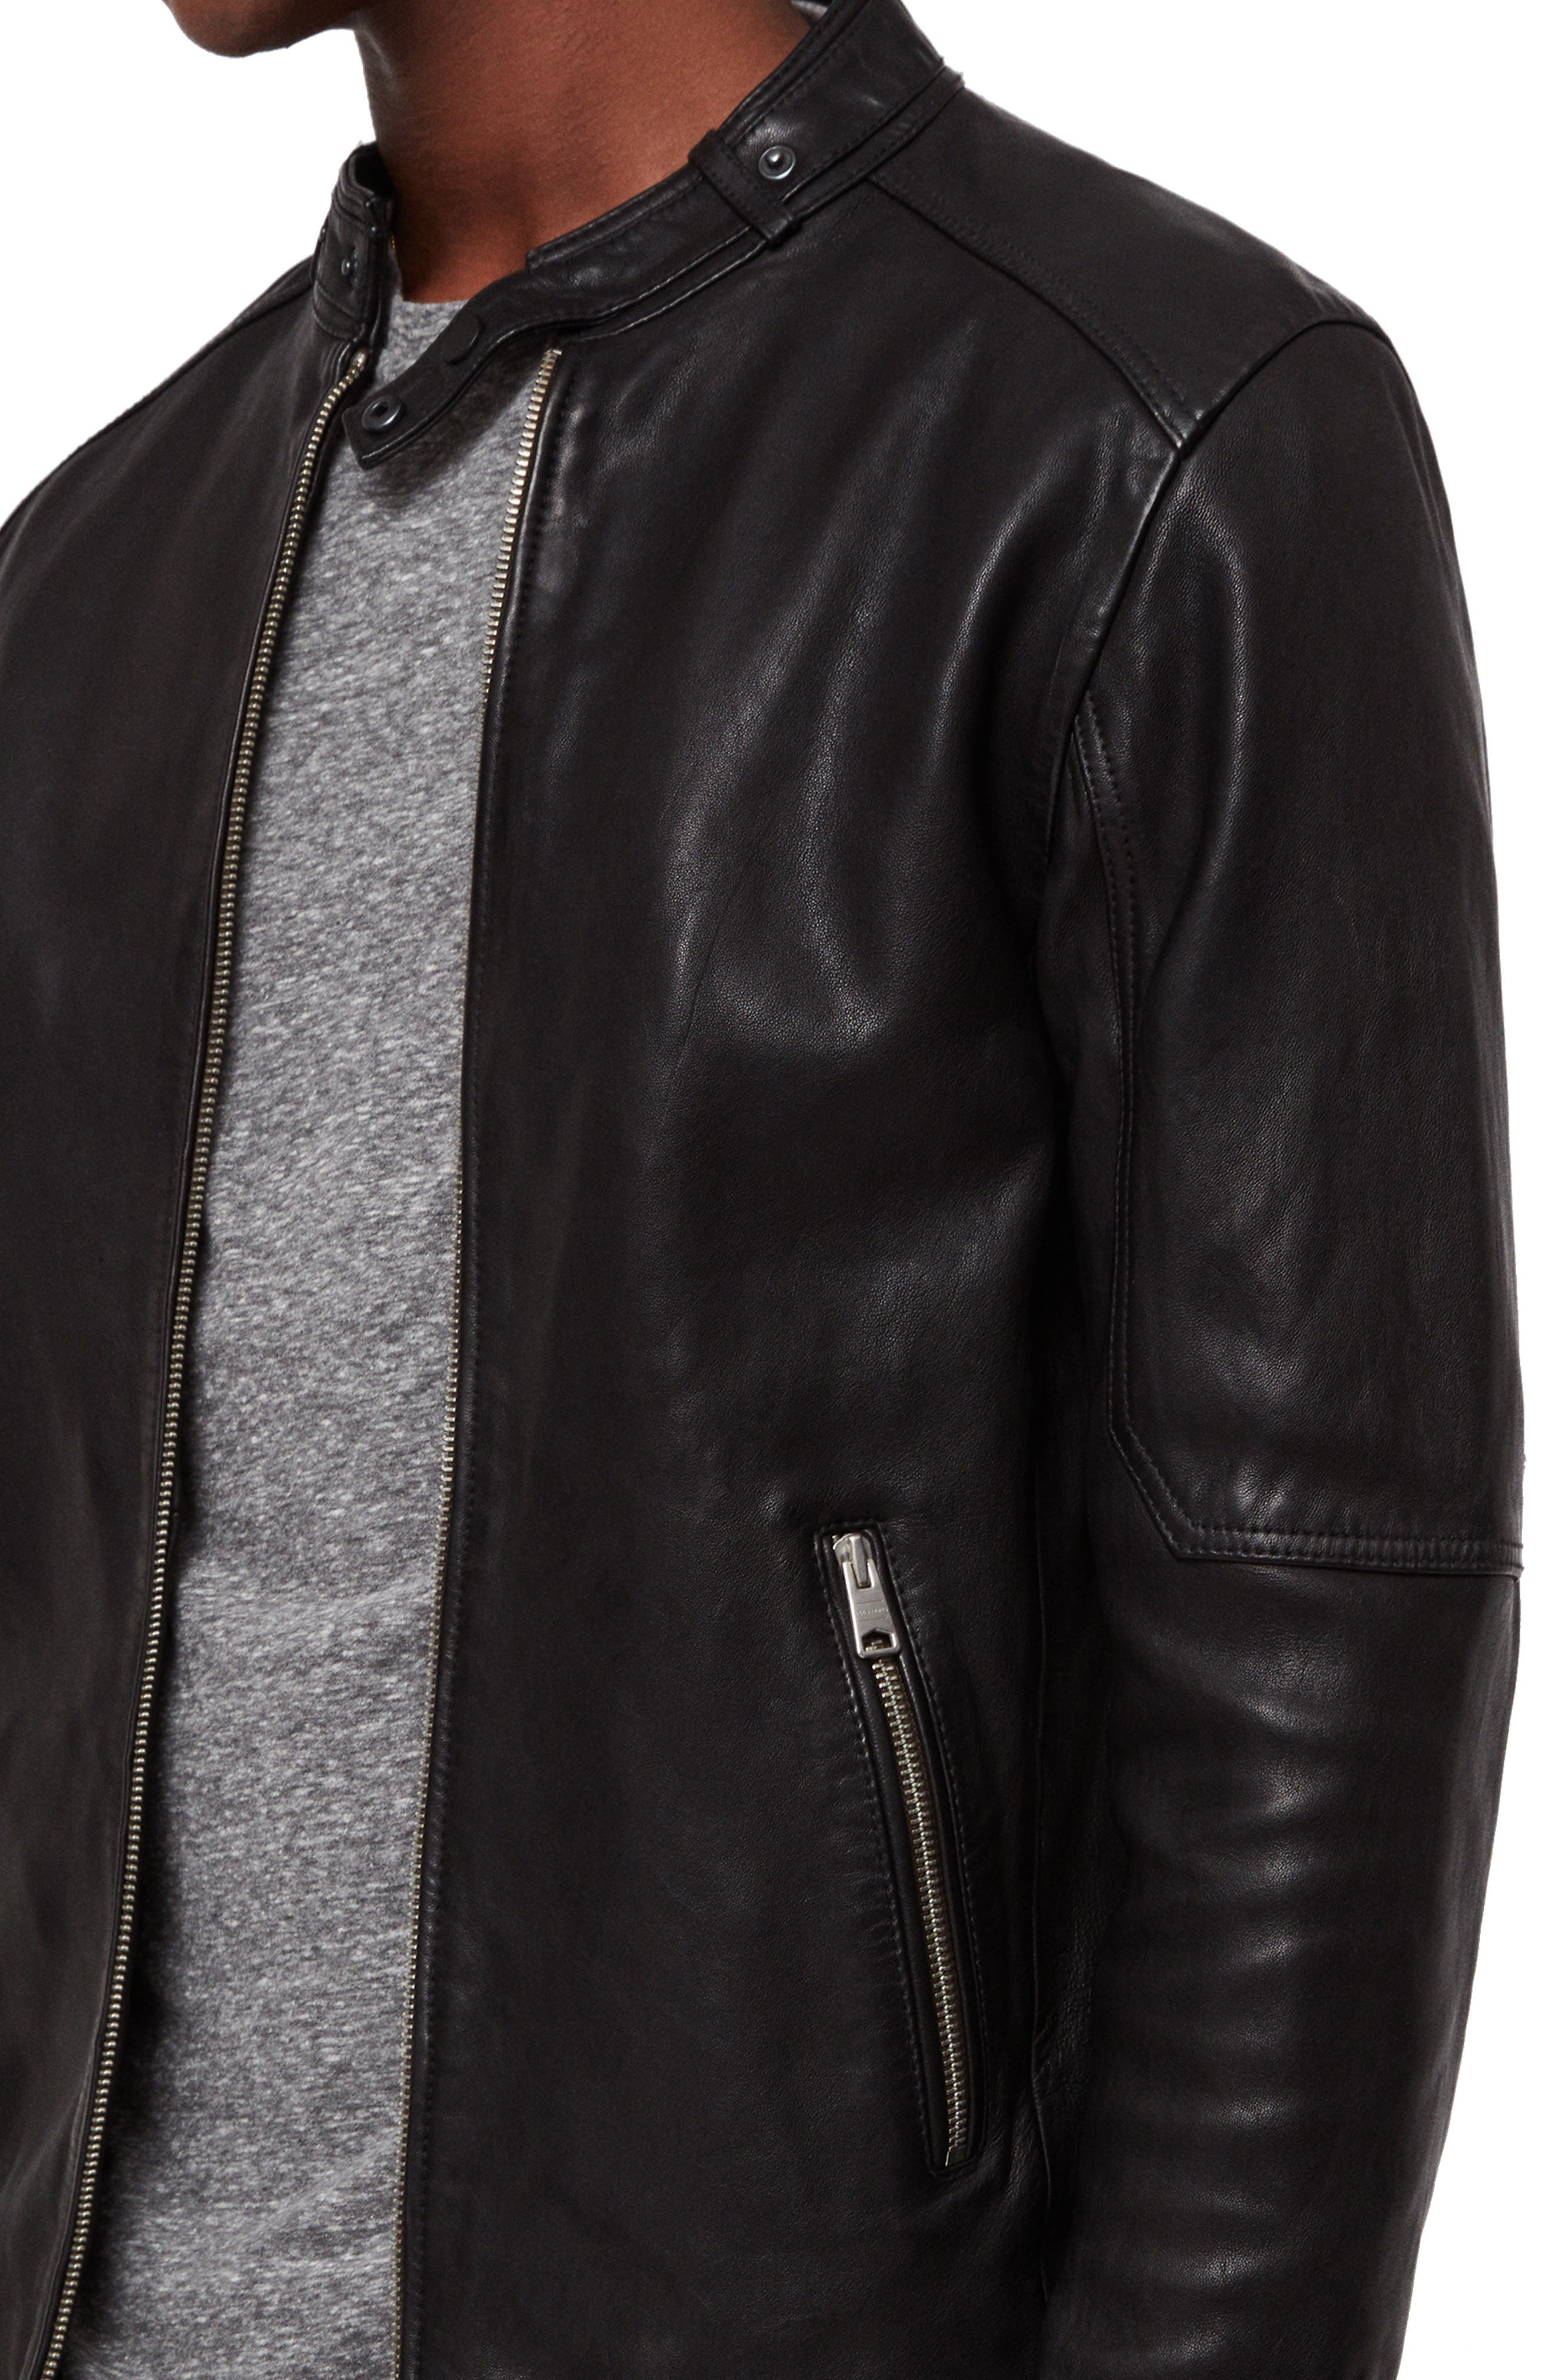 Cora Leather Jacket,                             Alternate thumbnail 4, color,                             003